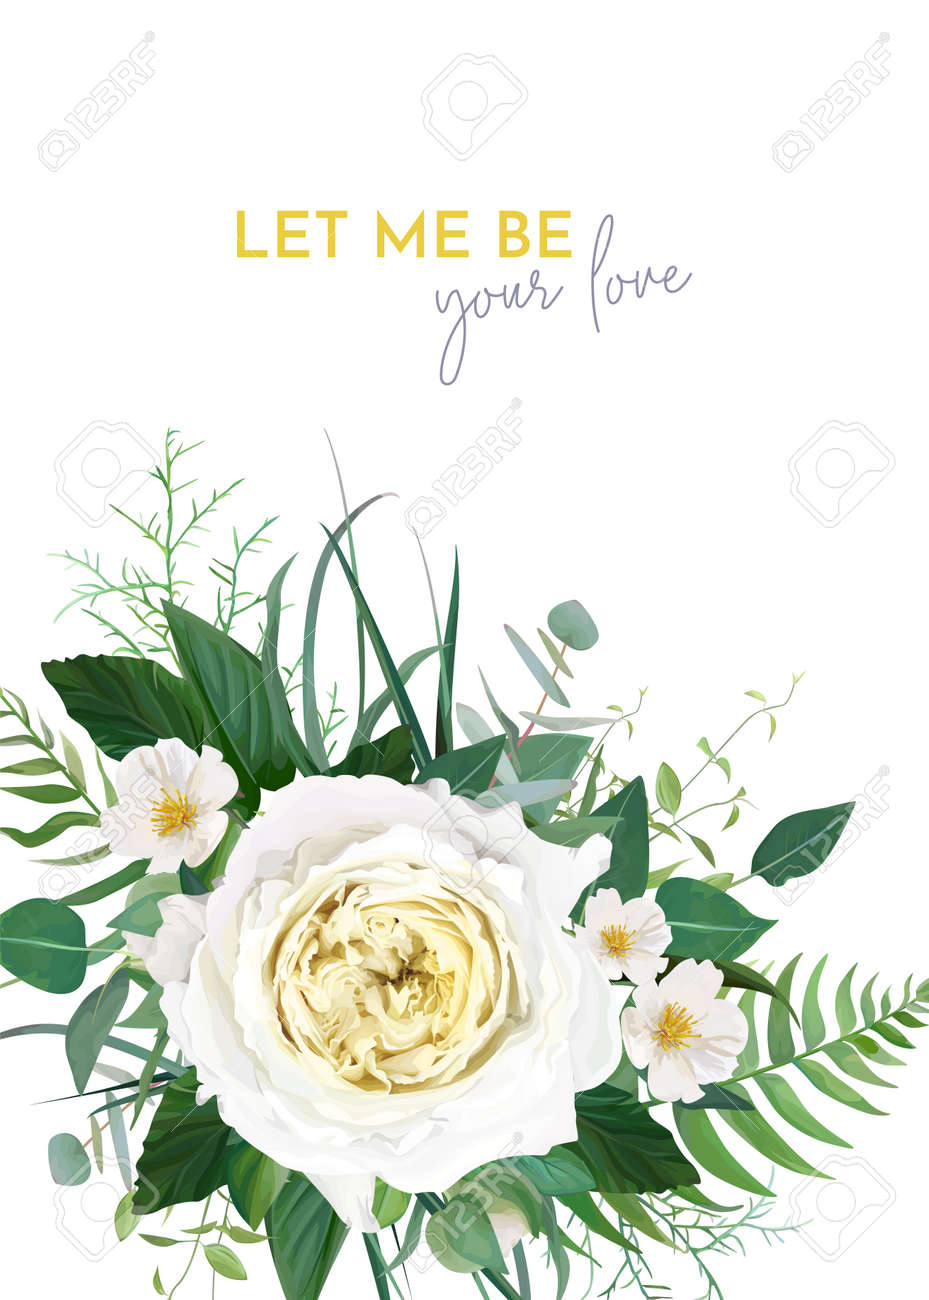 Stylish trendy vector floral wedding invite, save the date card, greeting, poster, banner template design. Yellow rose, white camellia flower, greenery, fern leaf, green eucalyptus branches decoration - 167304699